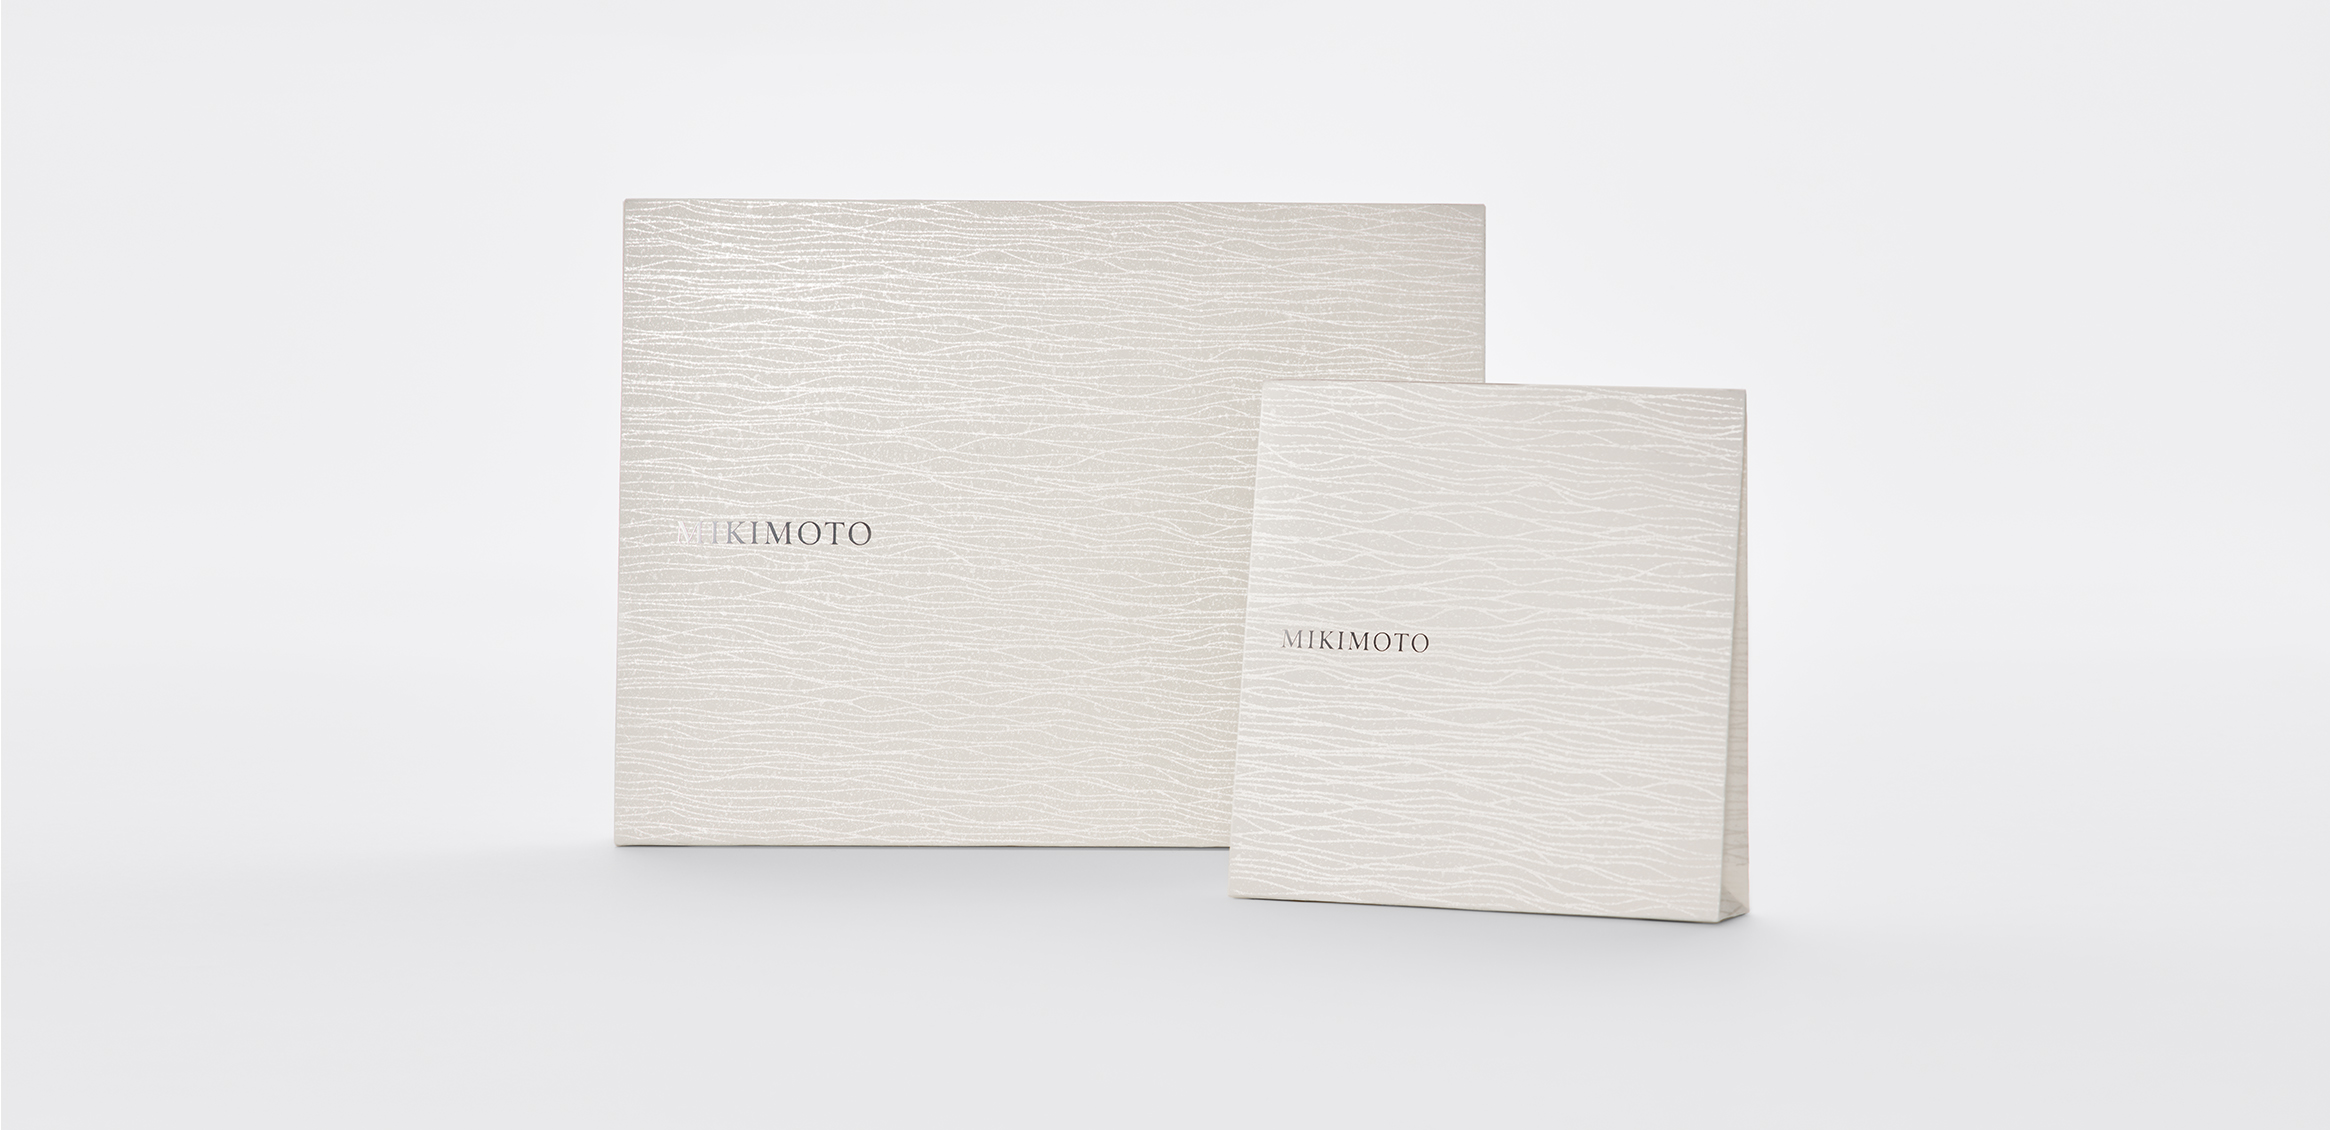 MIKIMOTO Package10枚目